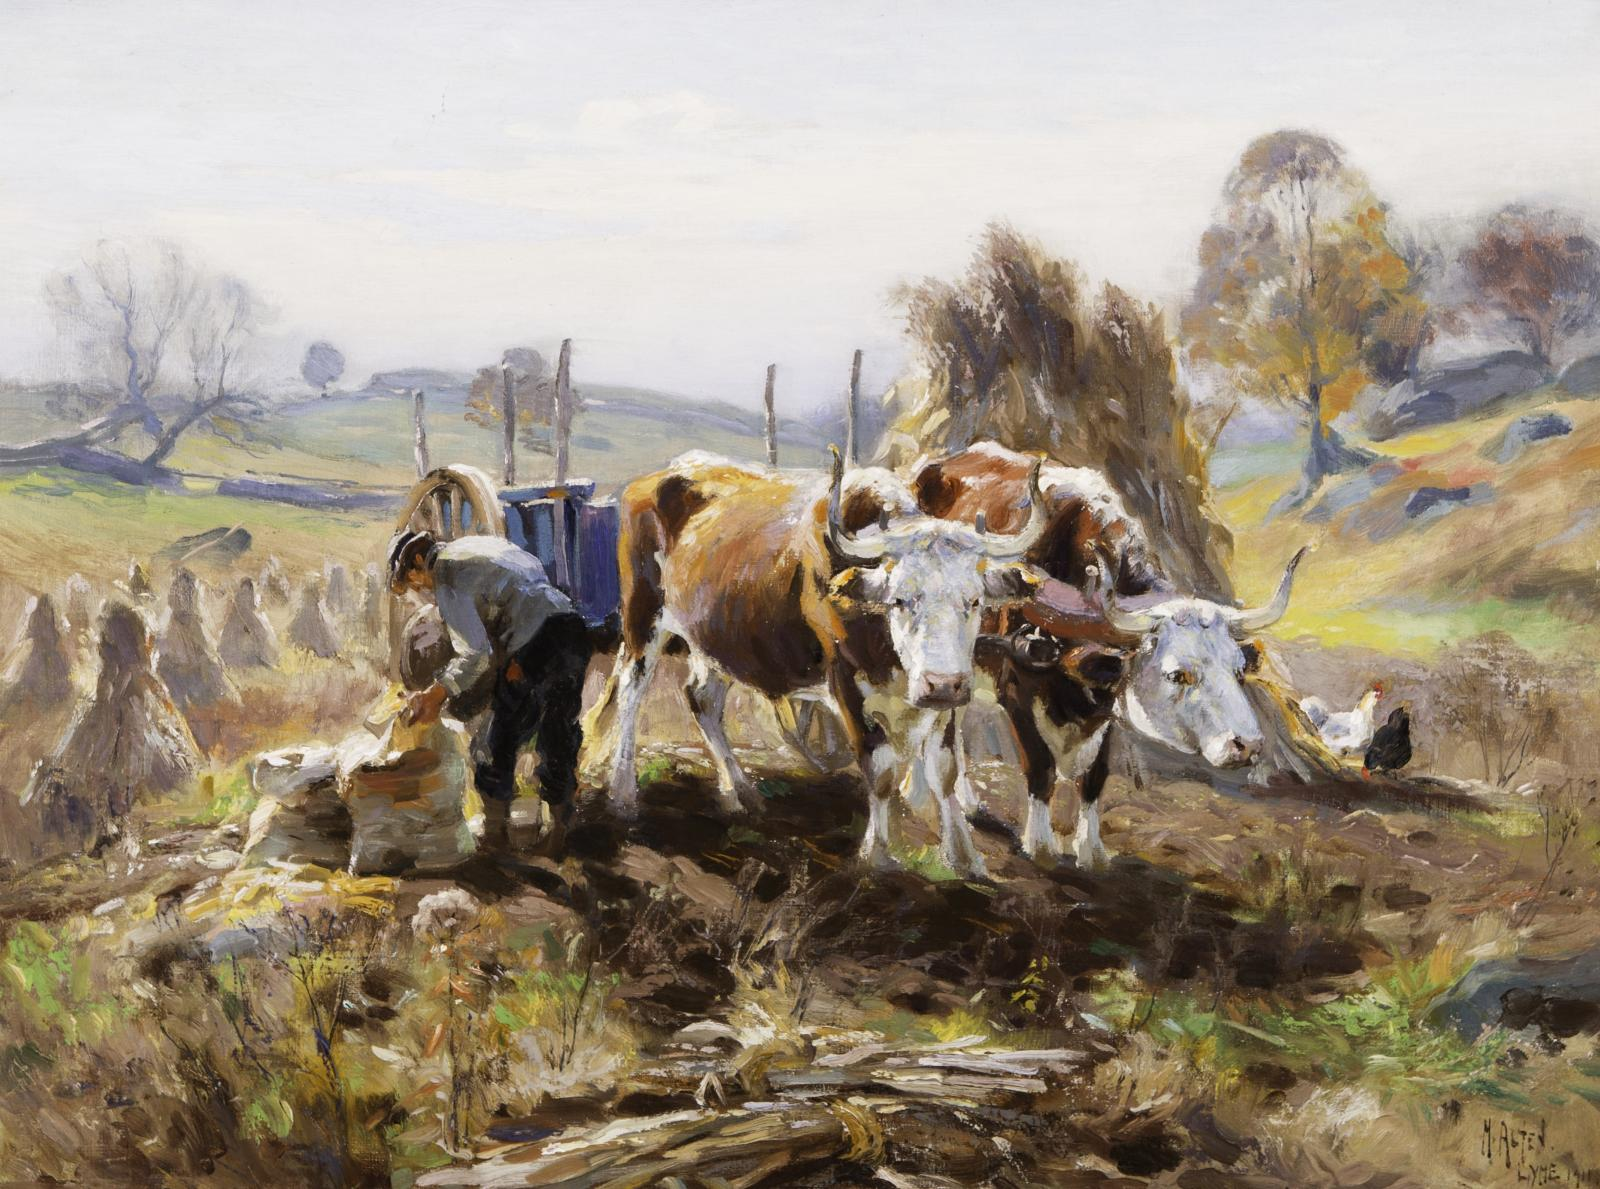 Farmer with two oxen is putting something in a bag on the ground.